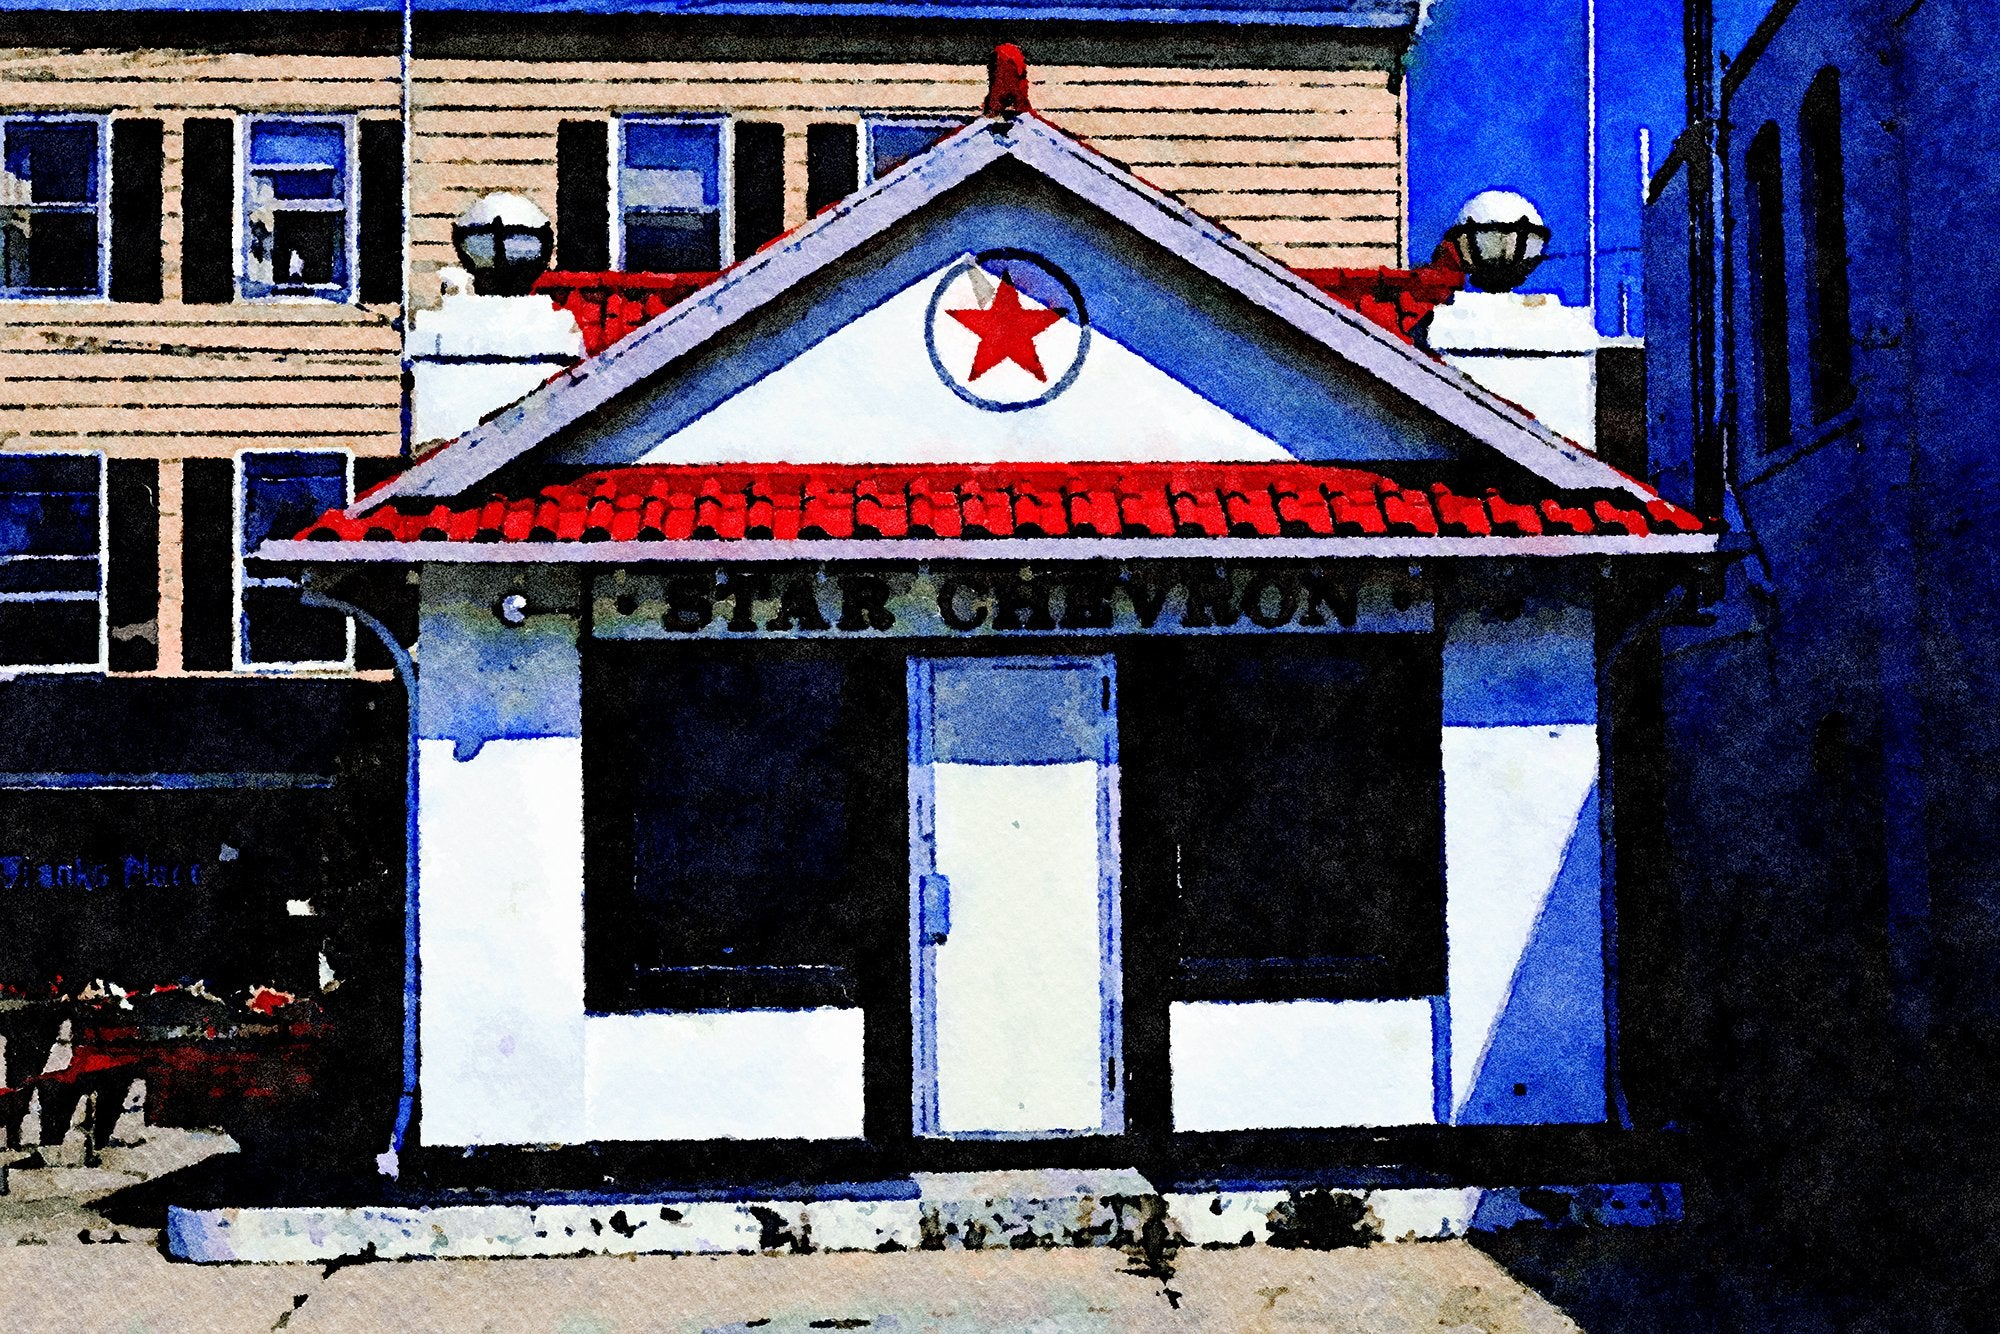 Star Chevron Gas Station, Bank Street, New London, Connecticut, Reworked, Series 1